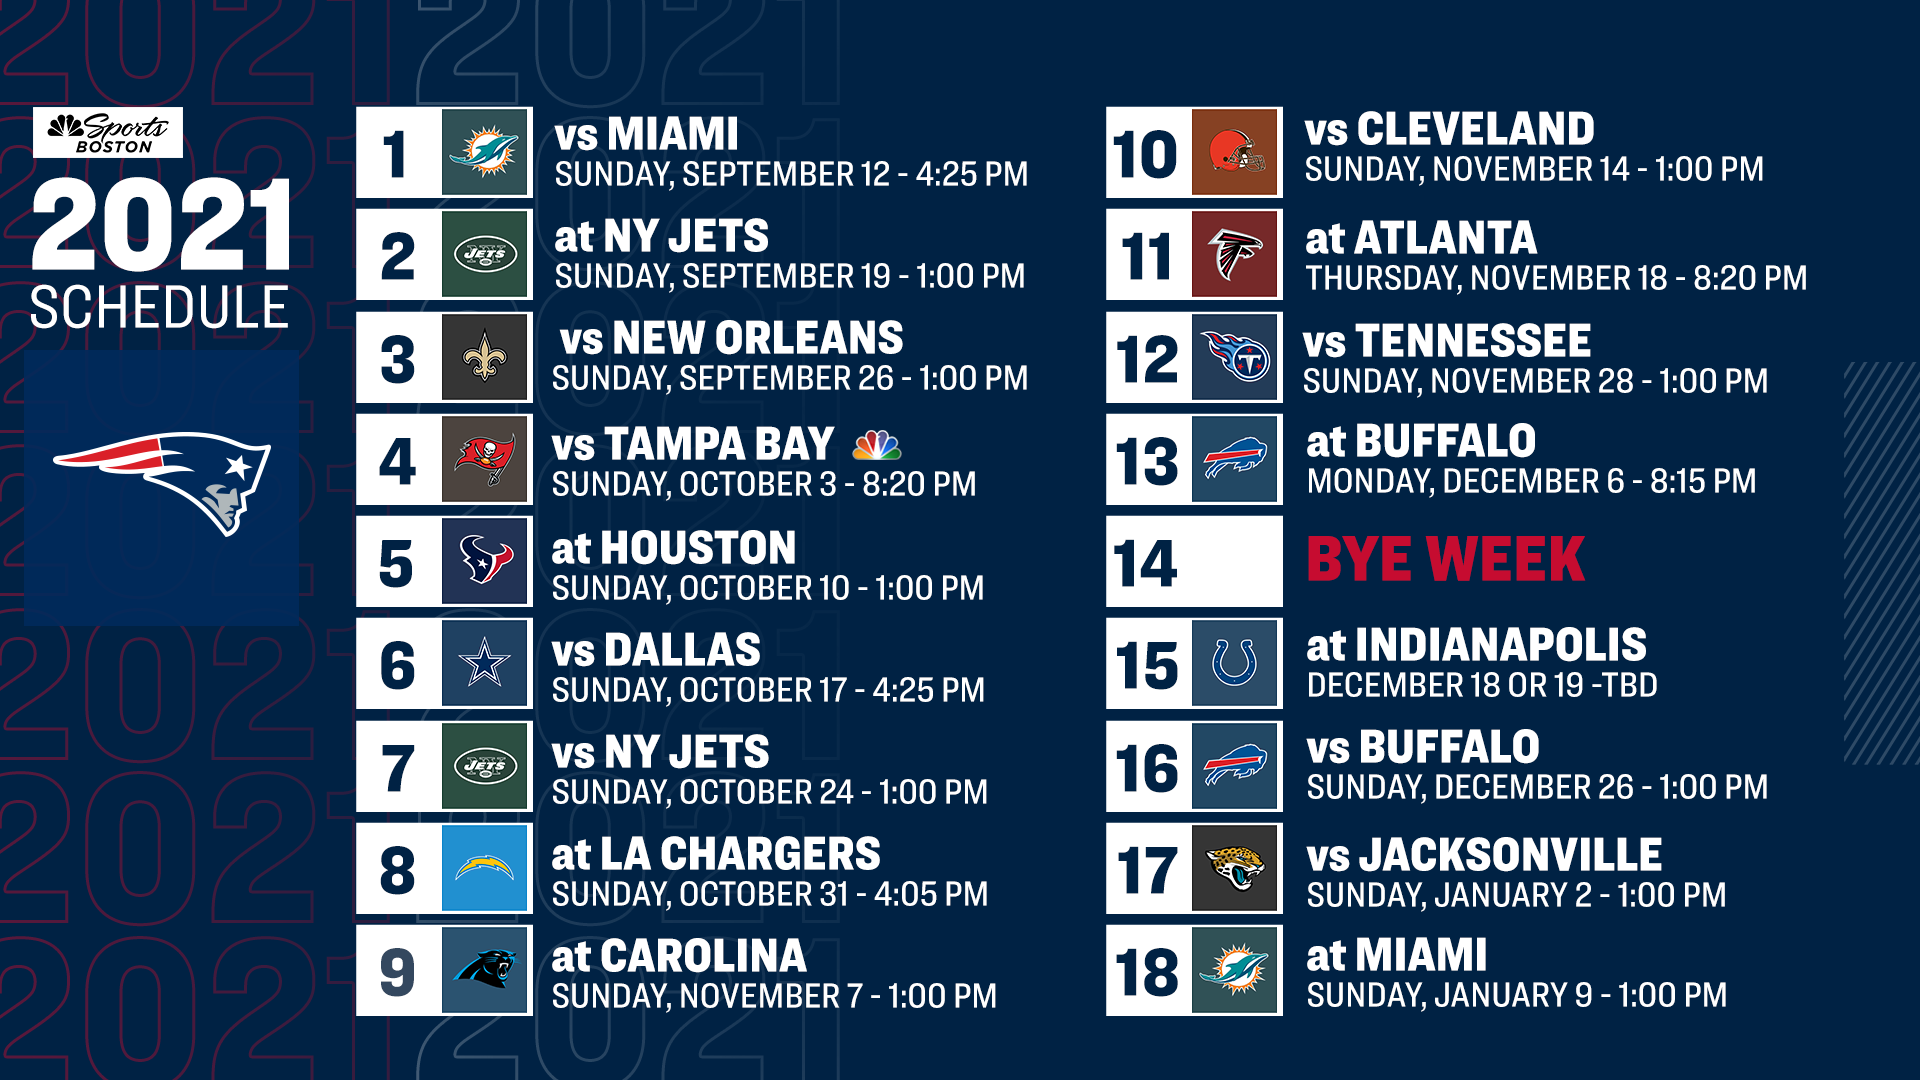 Patriots 2021 Schedule Game Predictions For All 17